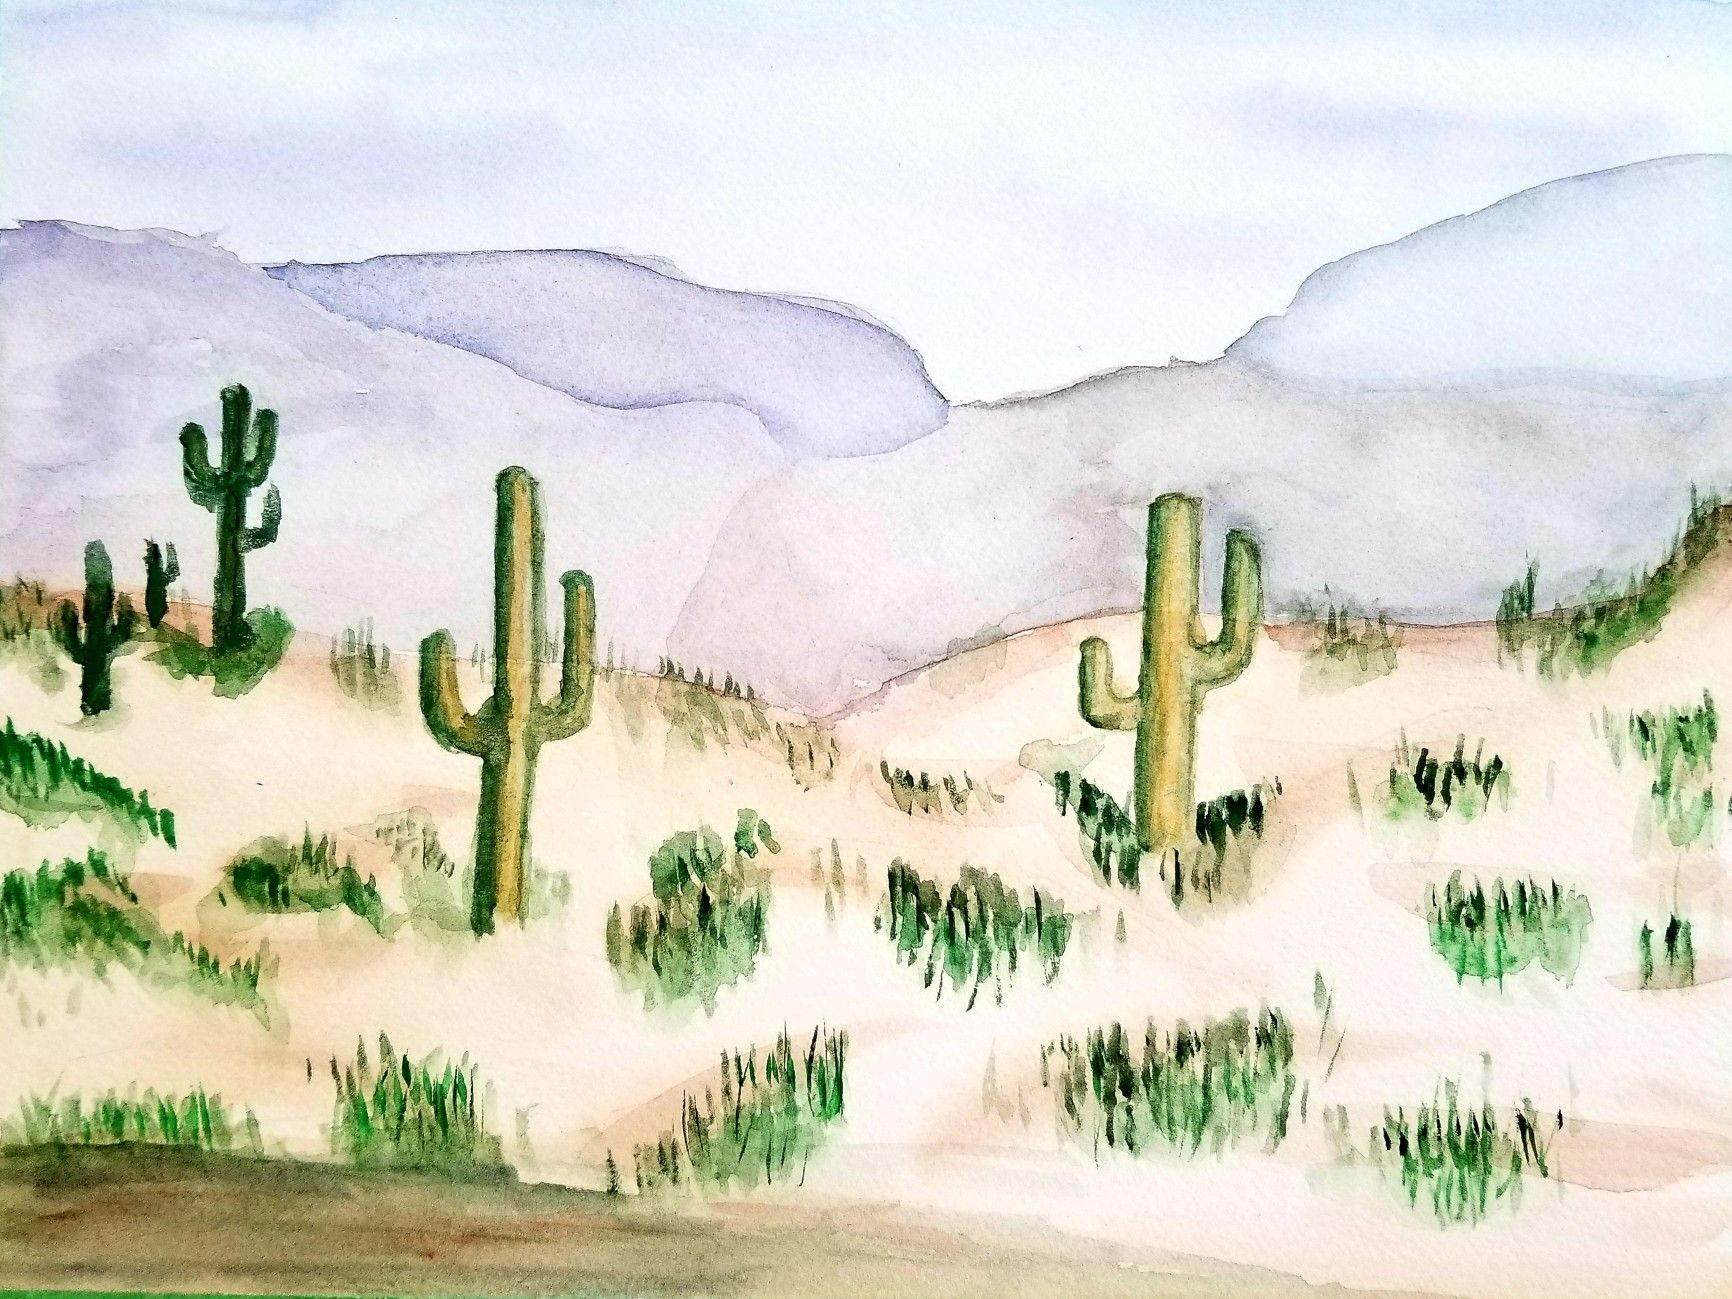 Everydaywatercolor Day 22 Atmospheric Perspective Paint A Desert Landscape Watercolor Everyday